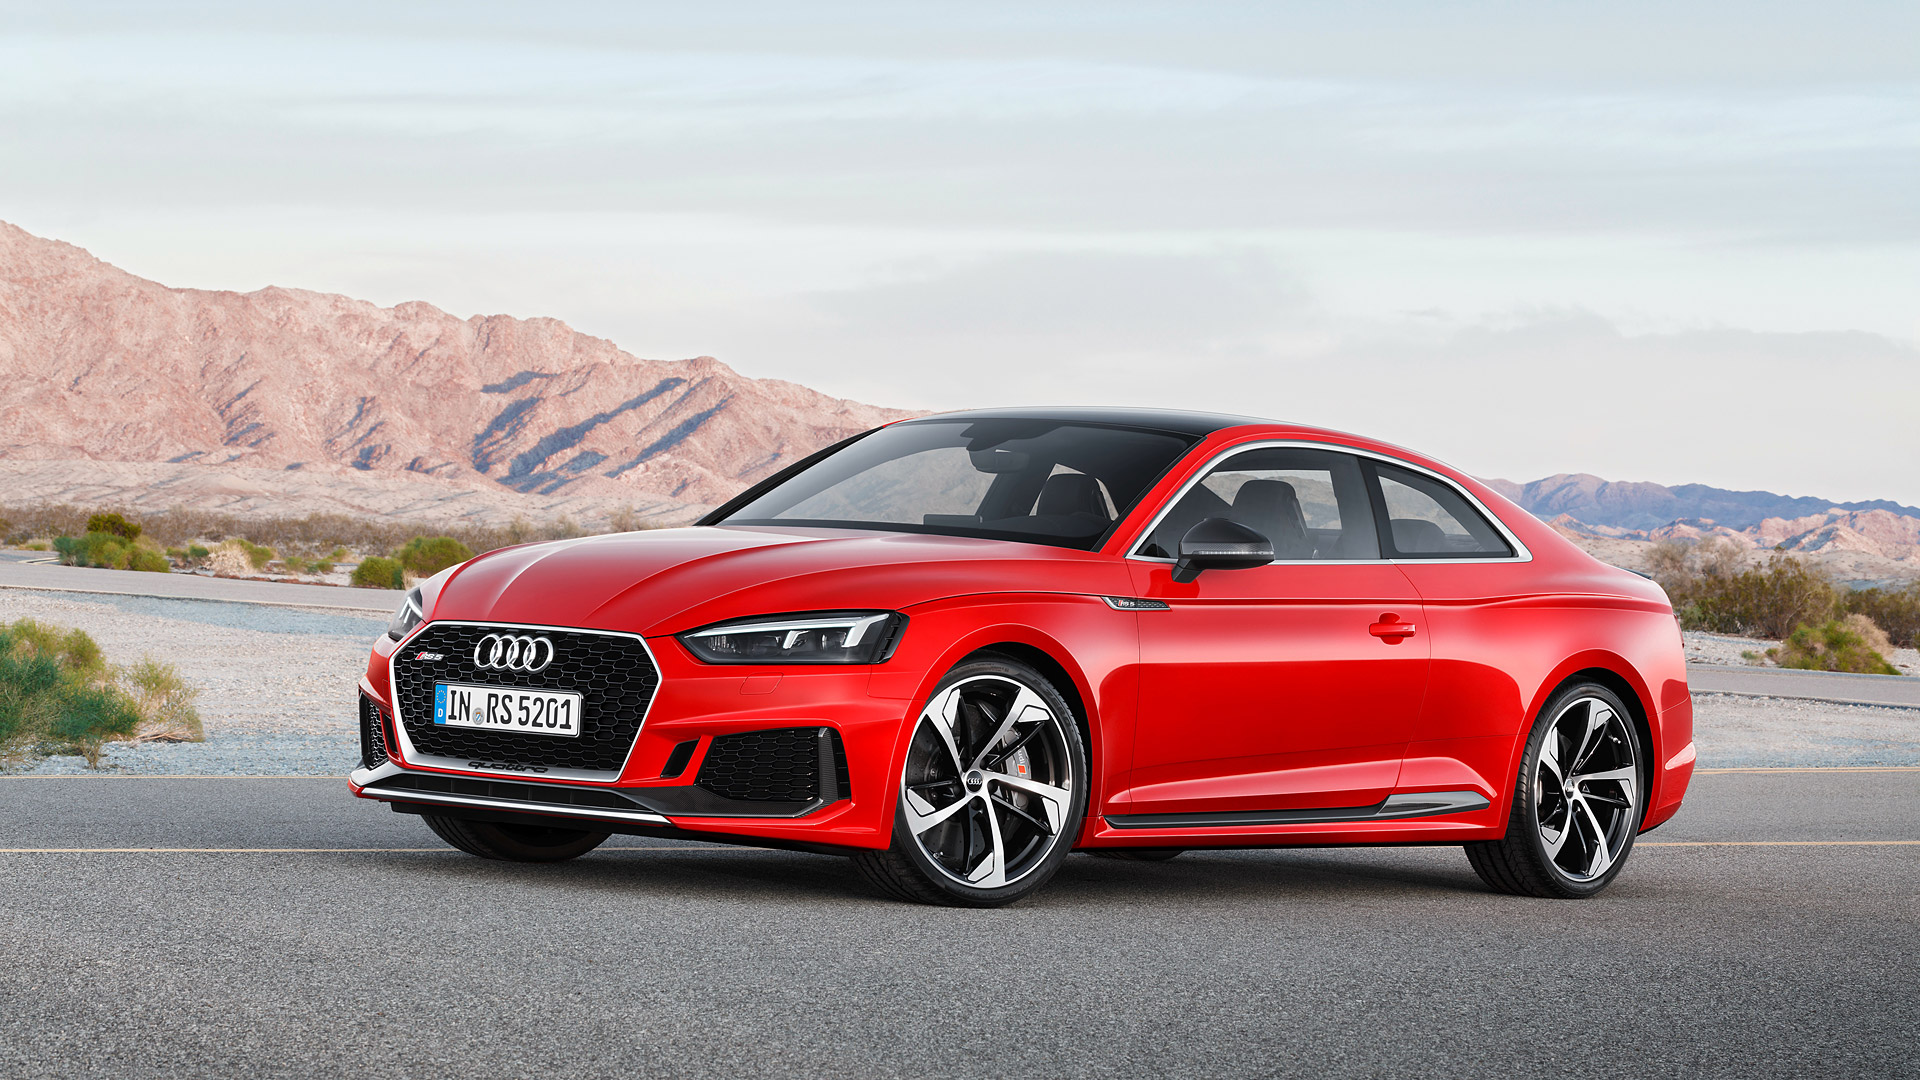 2018 Audi Rs5 Picture 2018 Audi Rs5 2178630 Hd